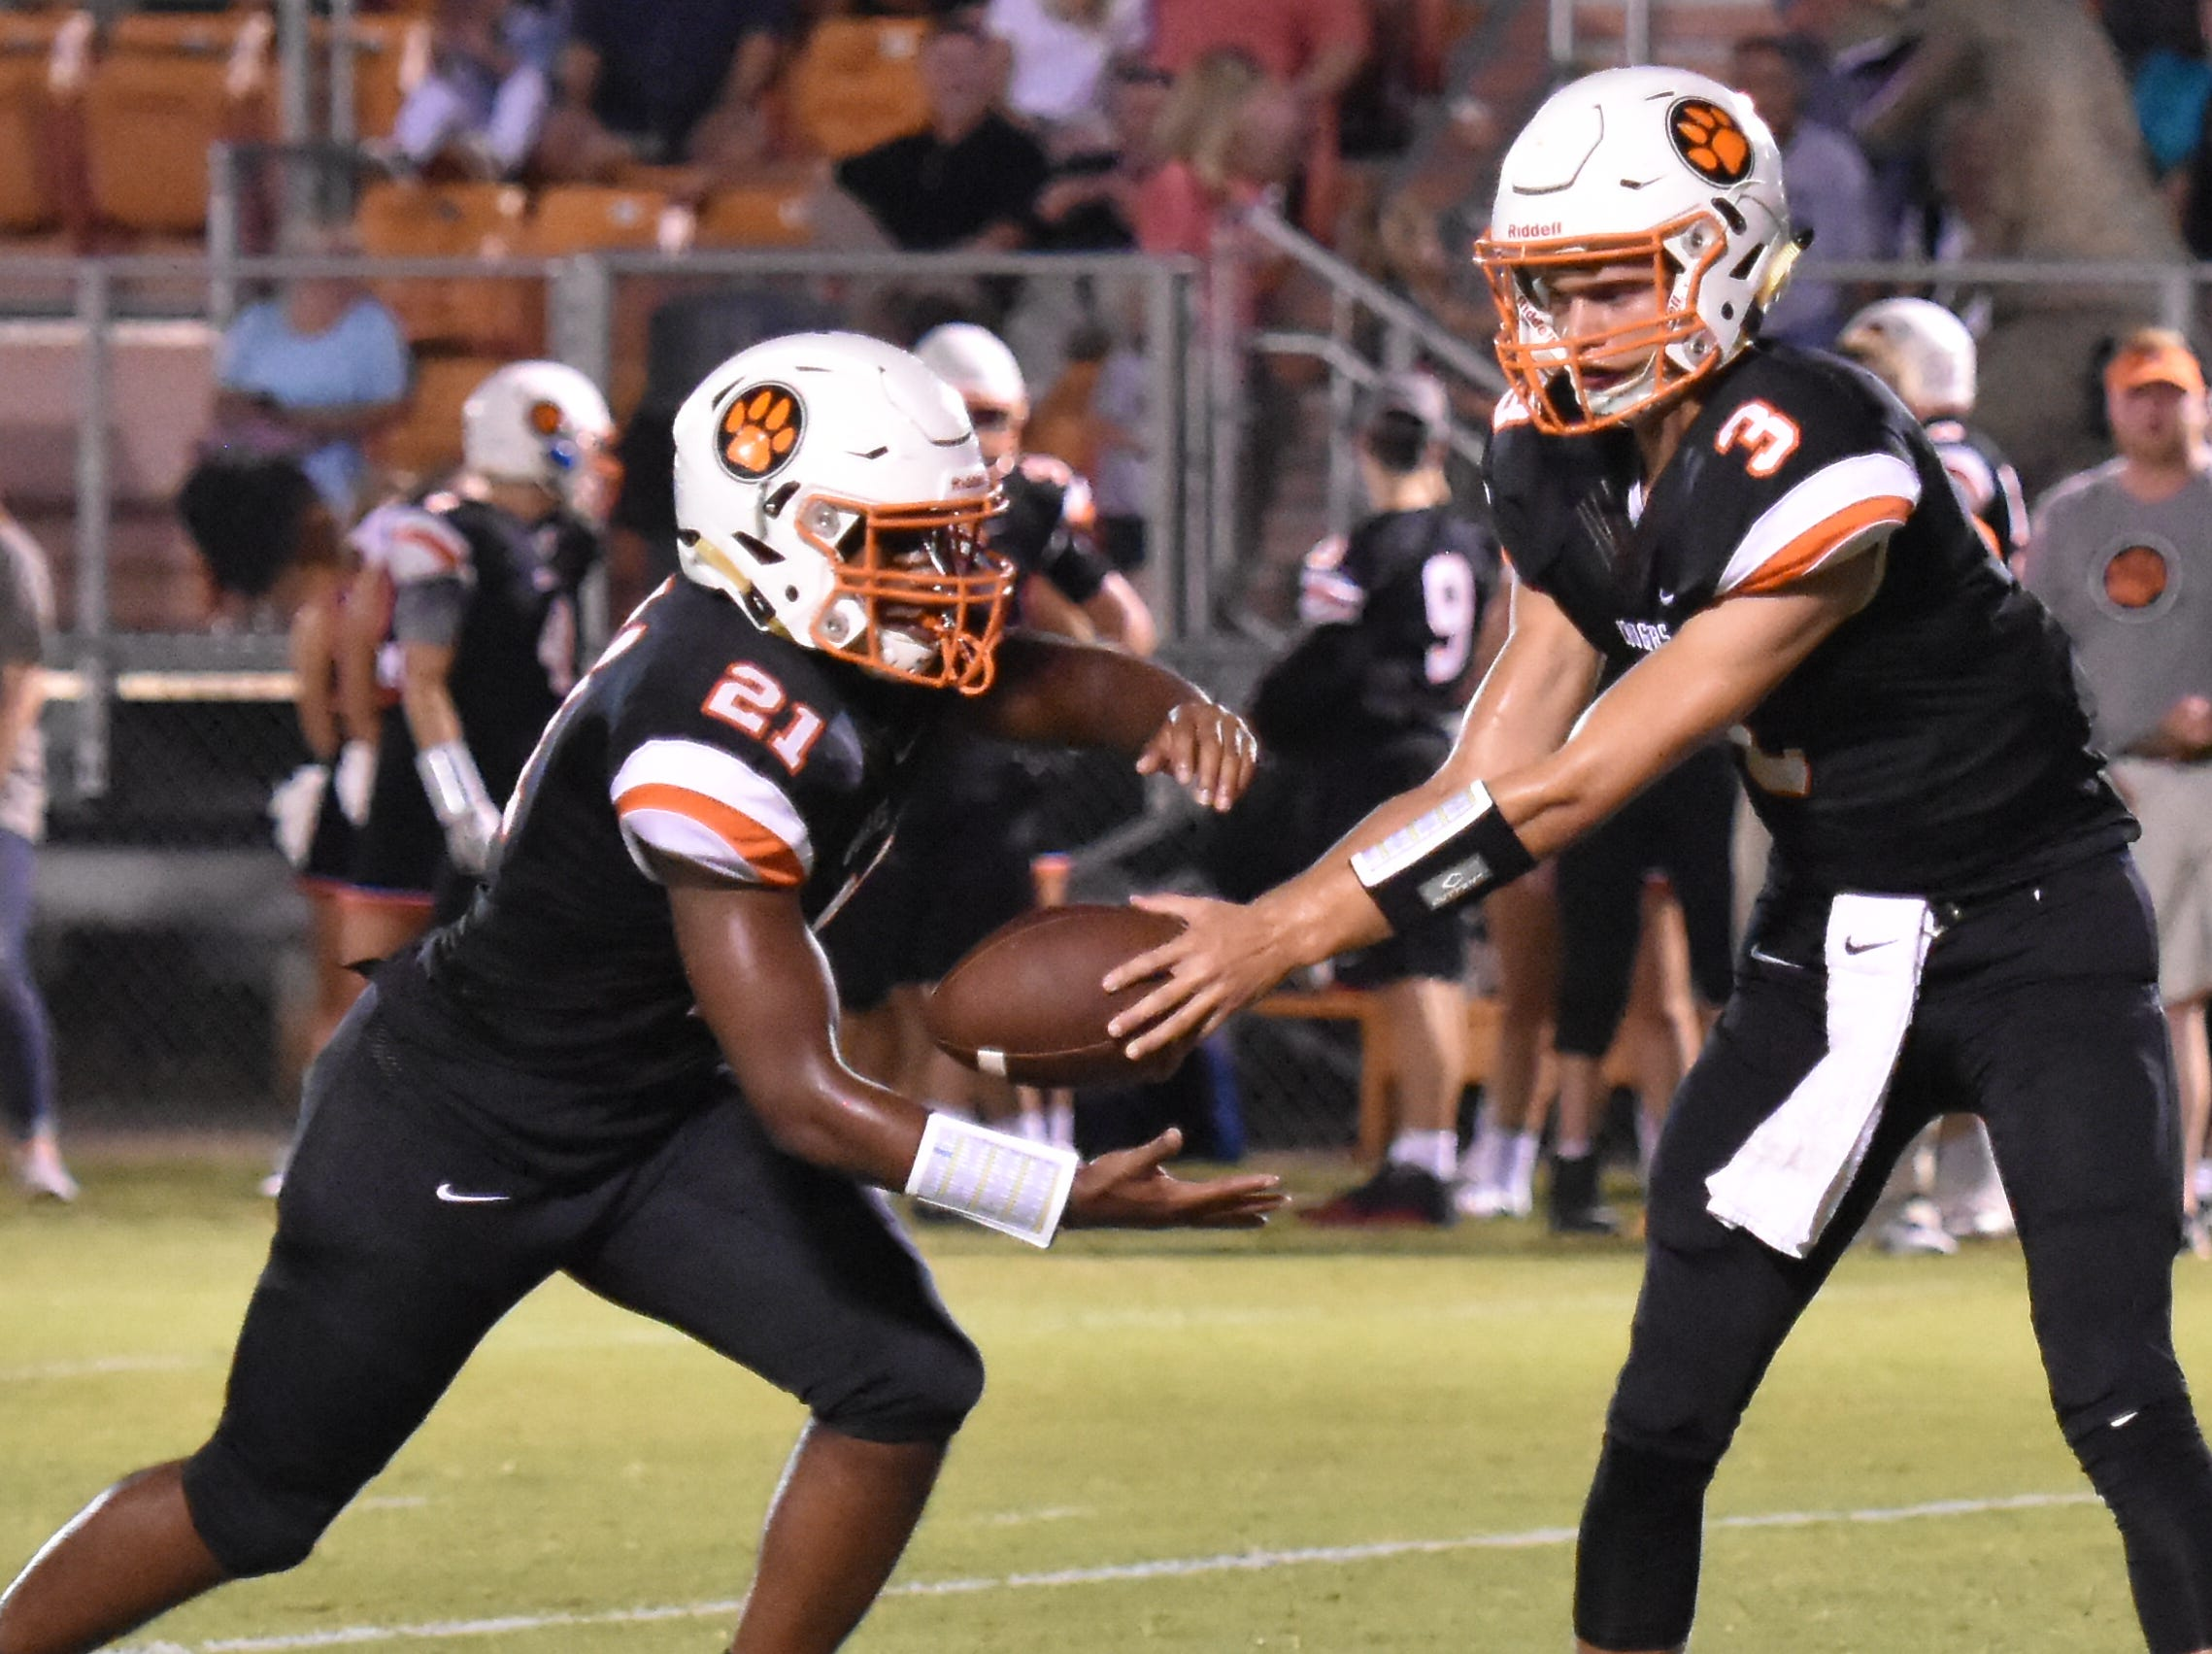 MTCS QB Jackson Green hands off to running back Kemari McGowan against Ezell-Harding Friday night.